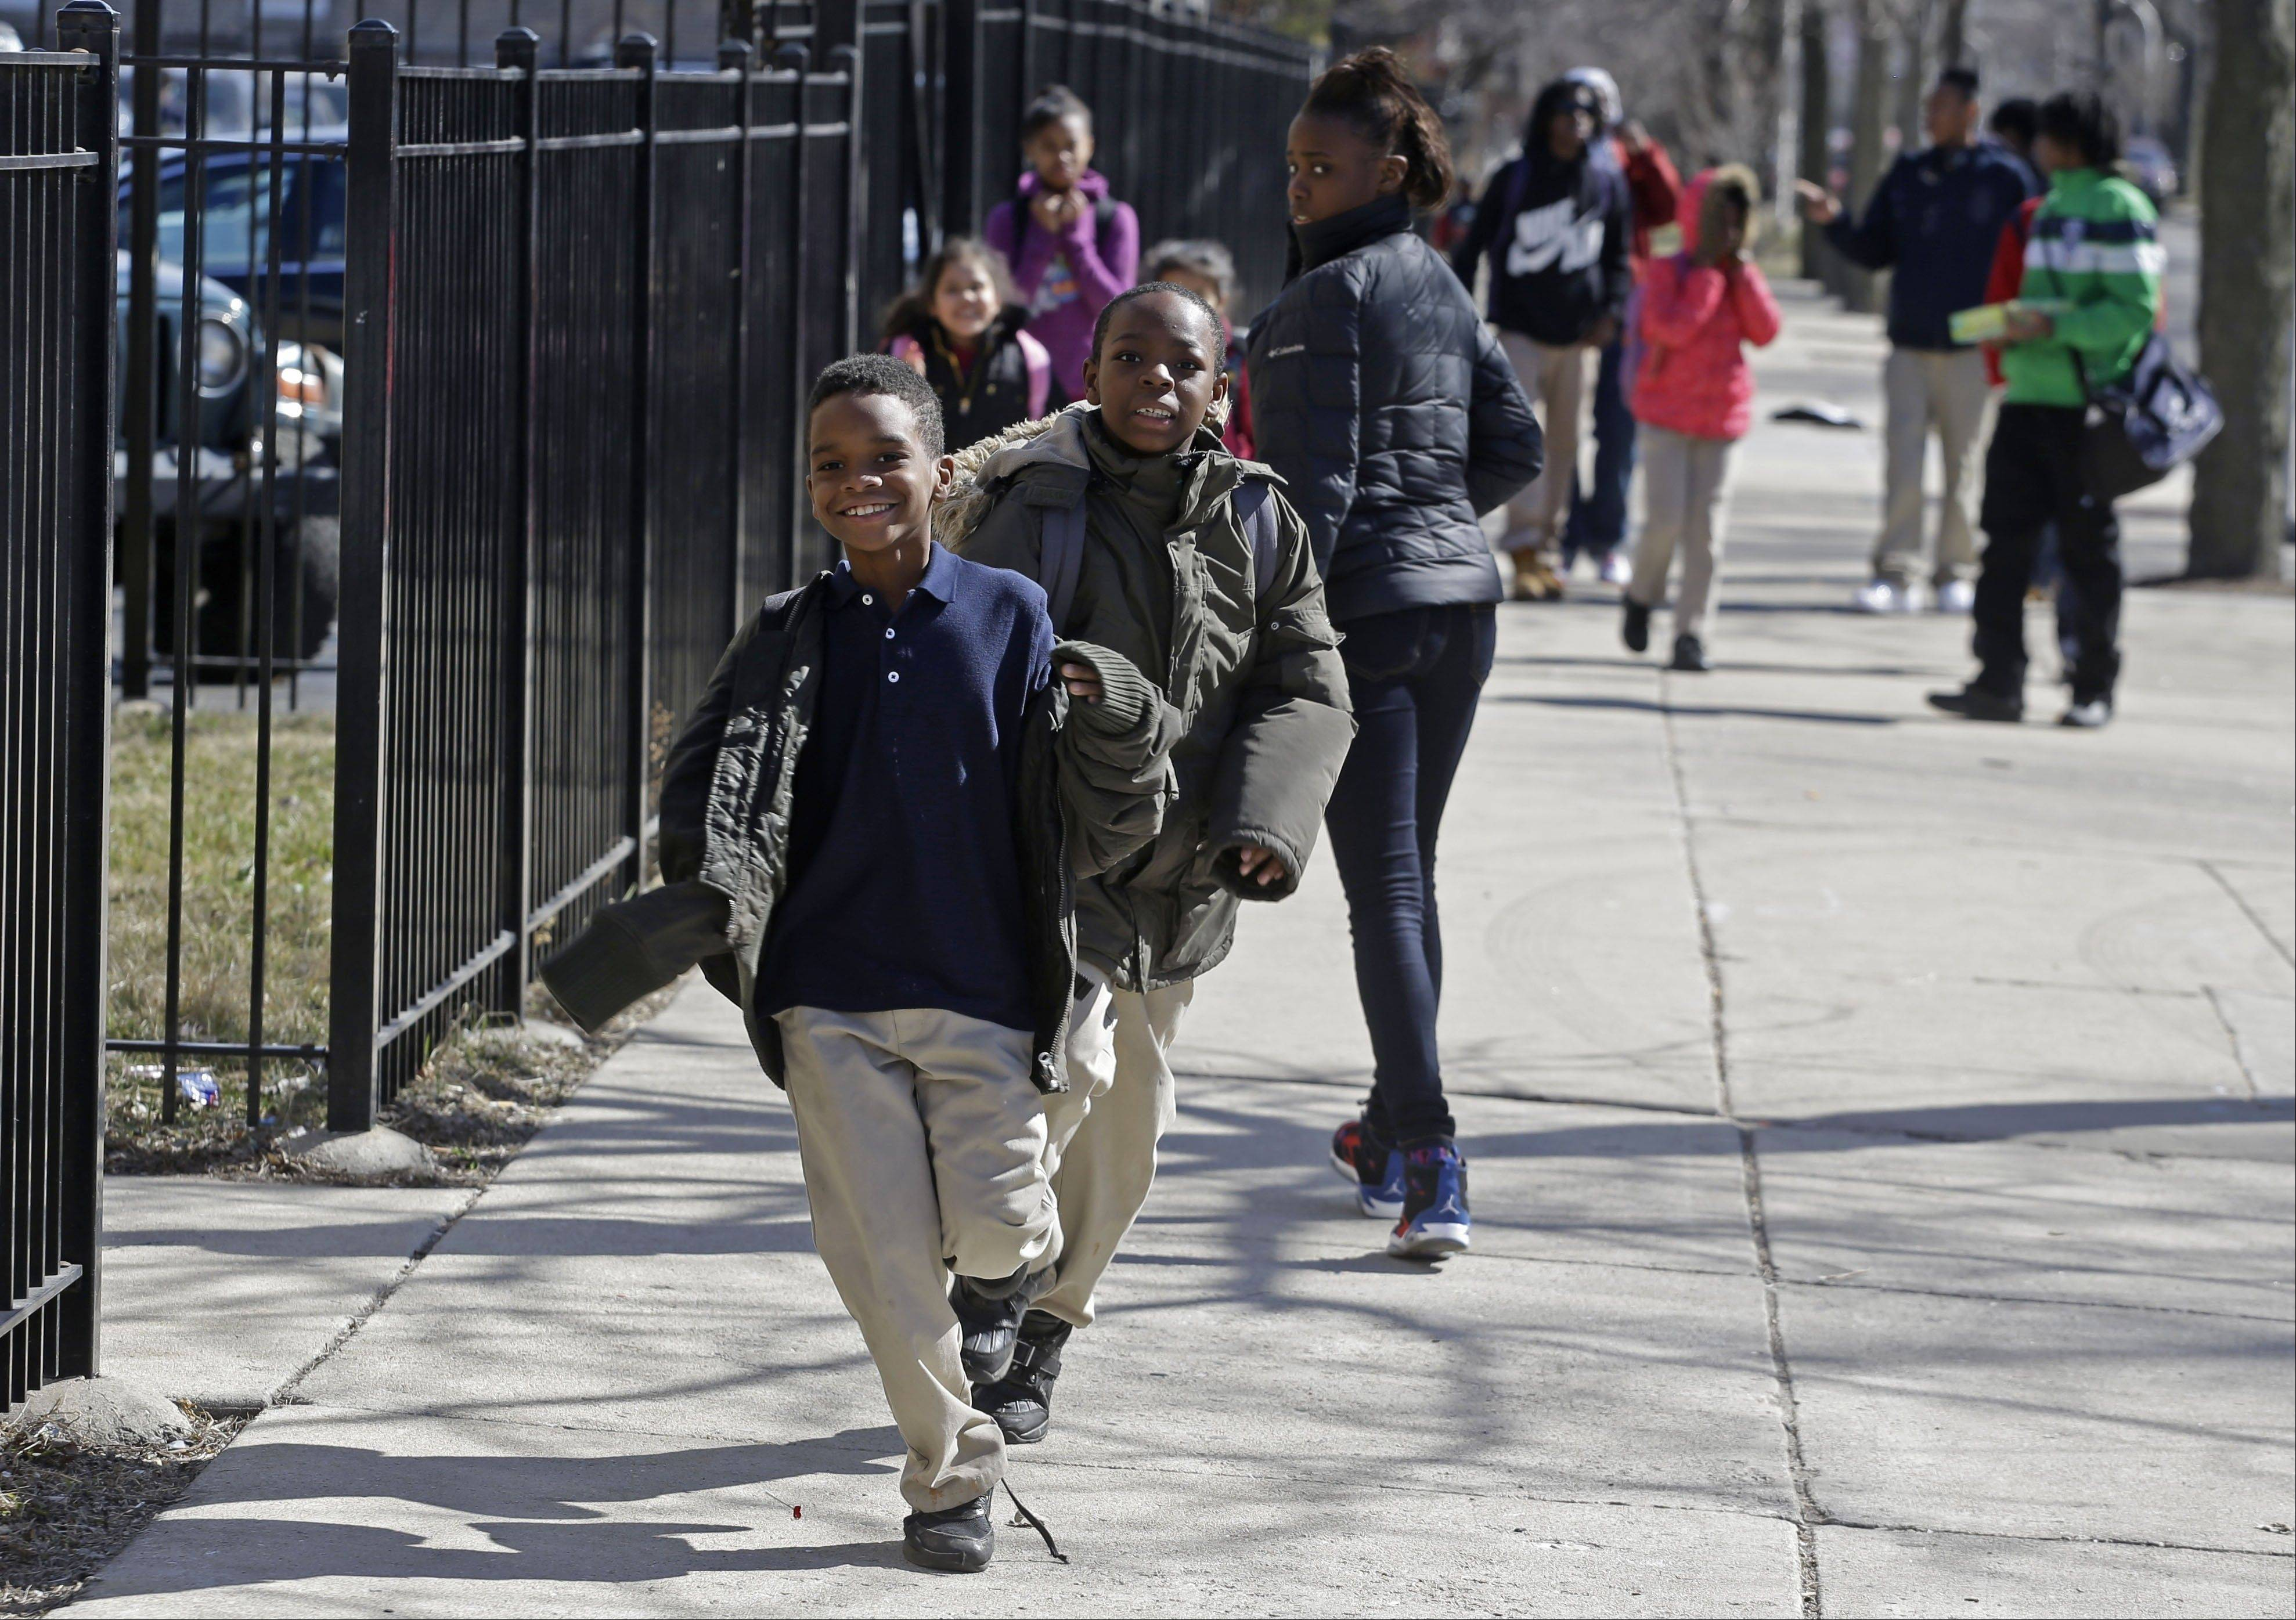 Children leave Dvorak Technology Academy in Chicago at the end of classes on April 3. While the school serves as a safe haven for children during classroom hours, their journeys to and from home are subject to peril as they cross gang borders that divide the city�s neighborhoods.